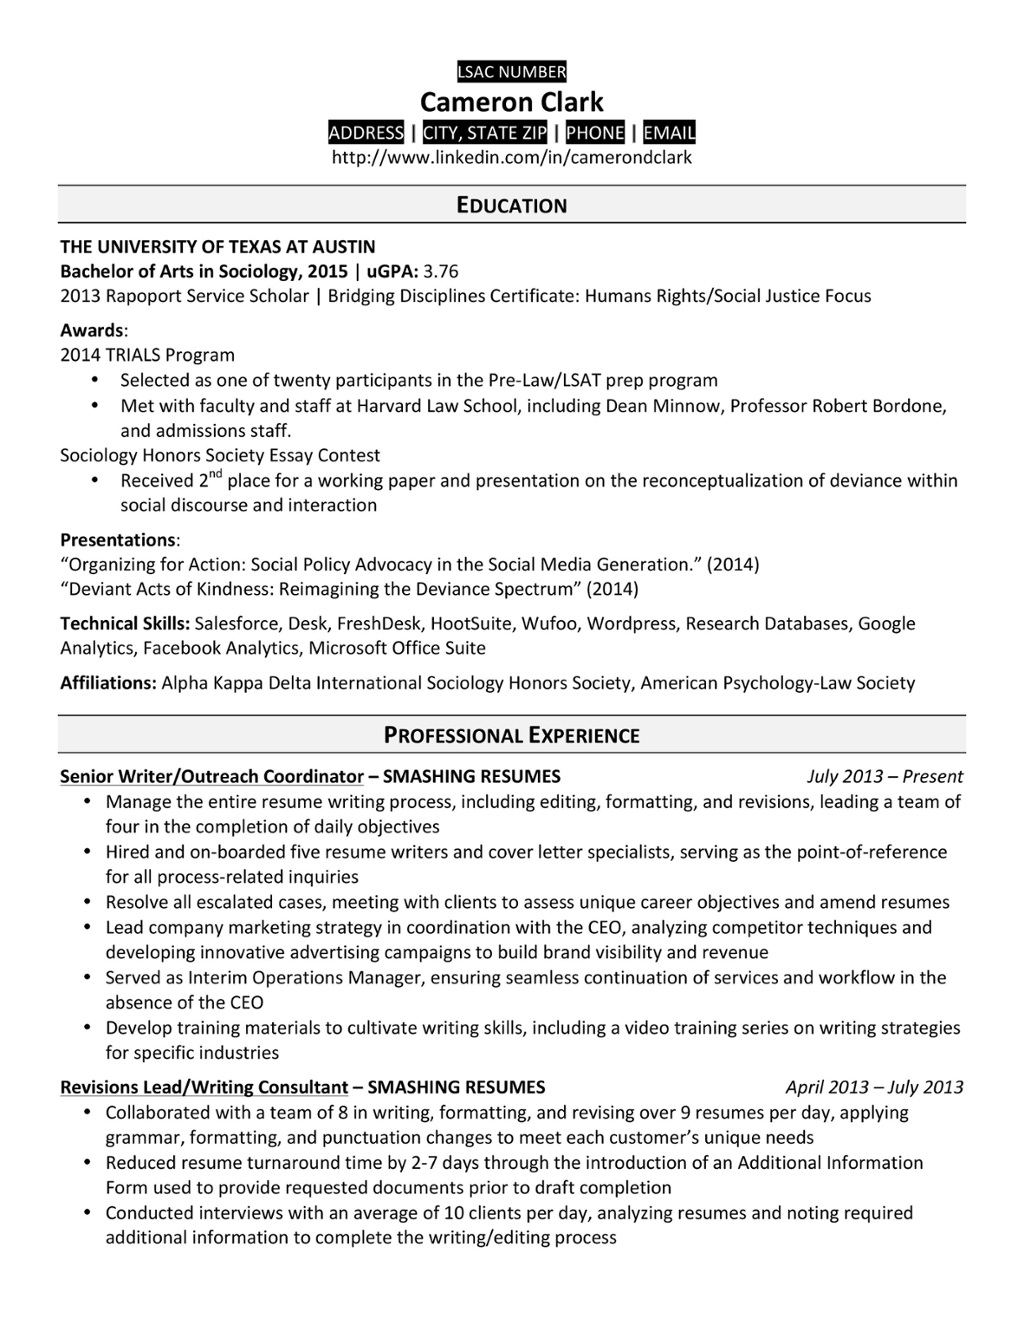 College Resume Examples Harvard A Law School Resume That Made The Cut Top Law Schools